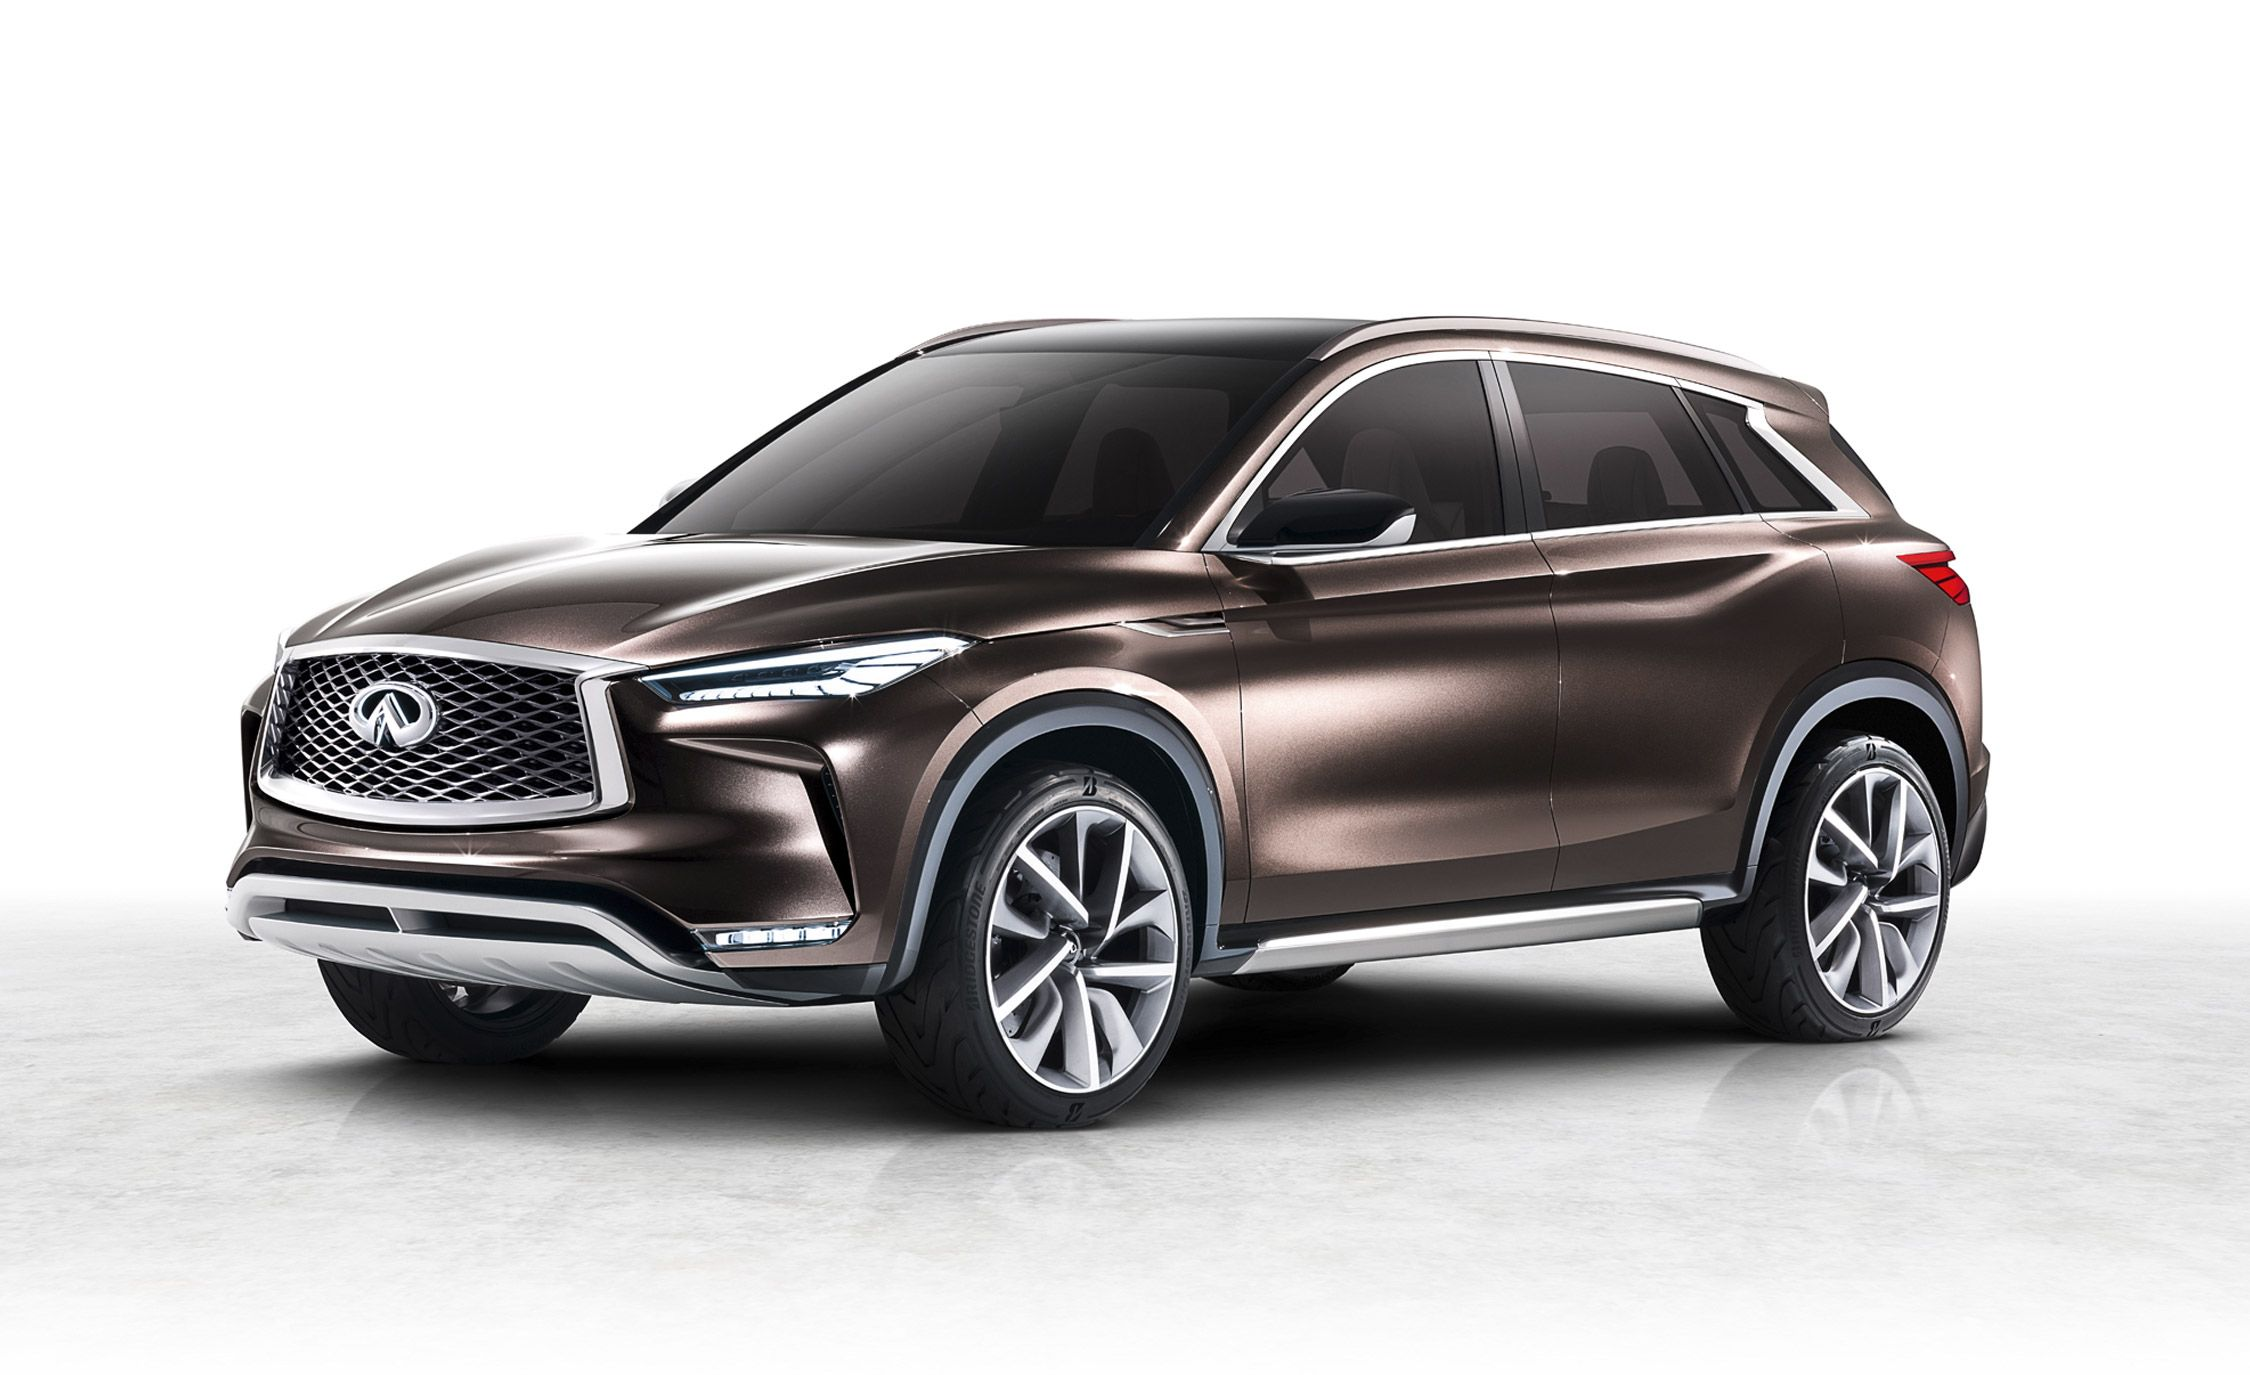 Infiniti qx50 reviews infiniti qx50 price photos and specs 2018 infiniti qx50 notable tech in an important package vanachro Image collections